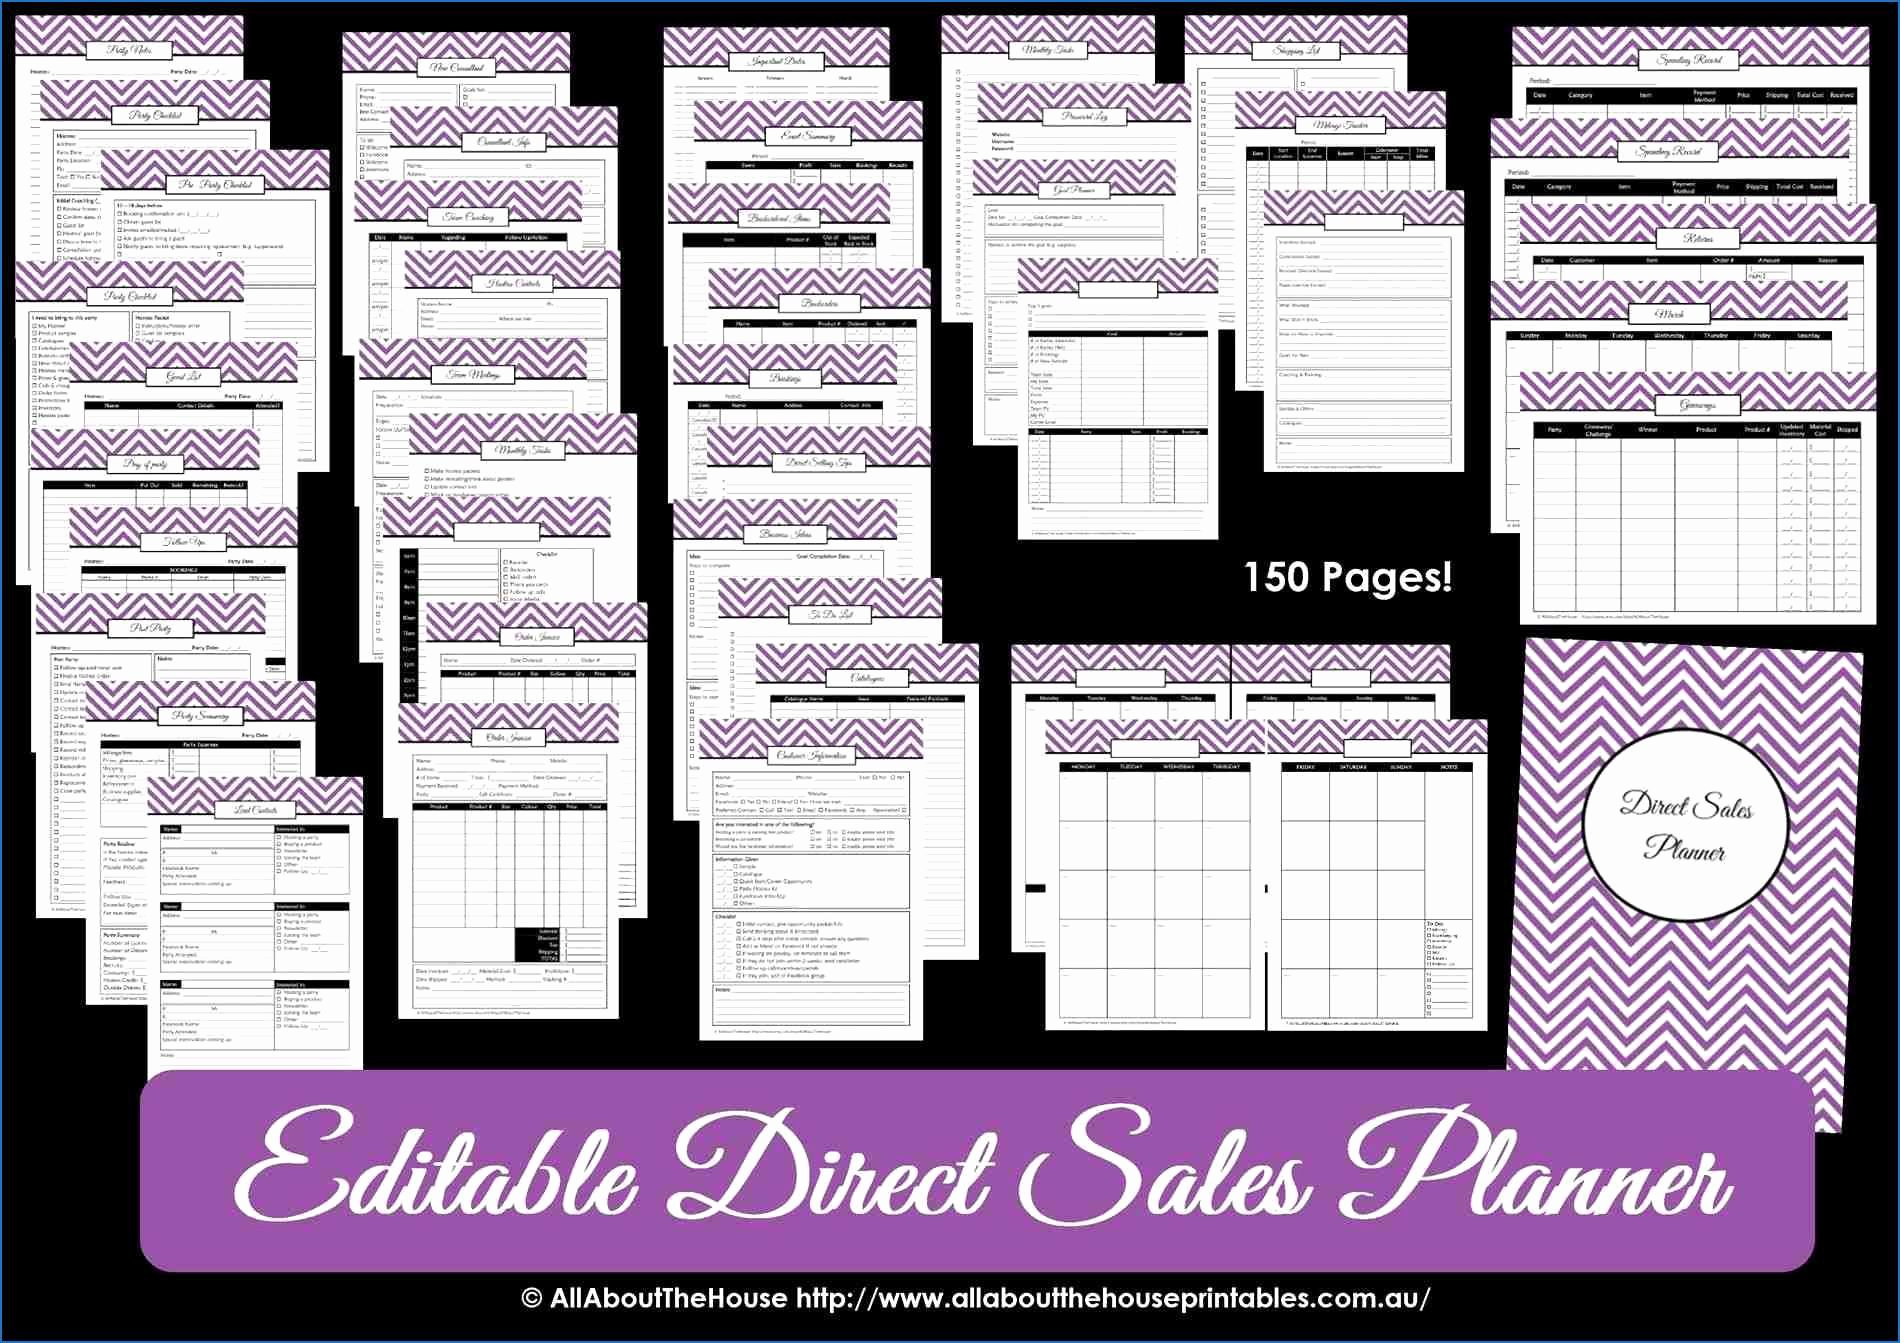 Scentsy Gift Certificate Template Elegant Business Card Templates for Pages Along with